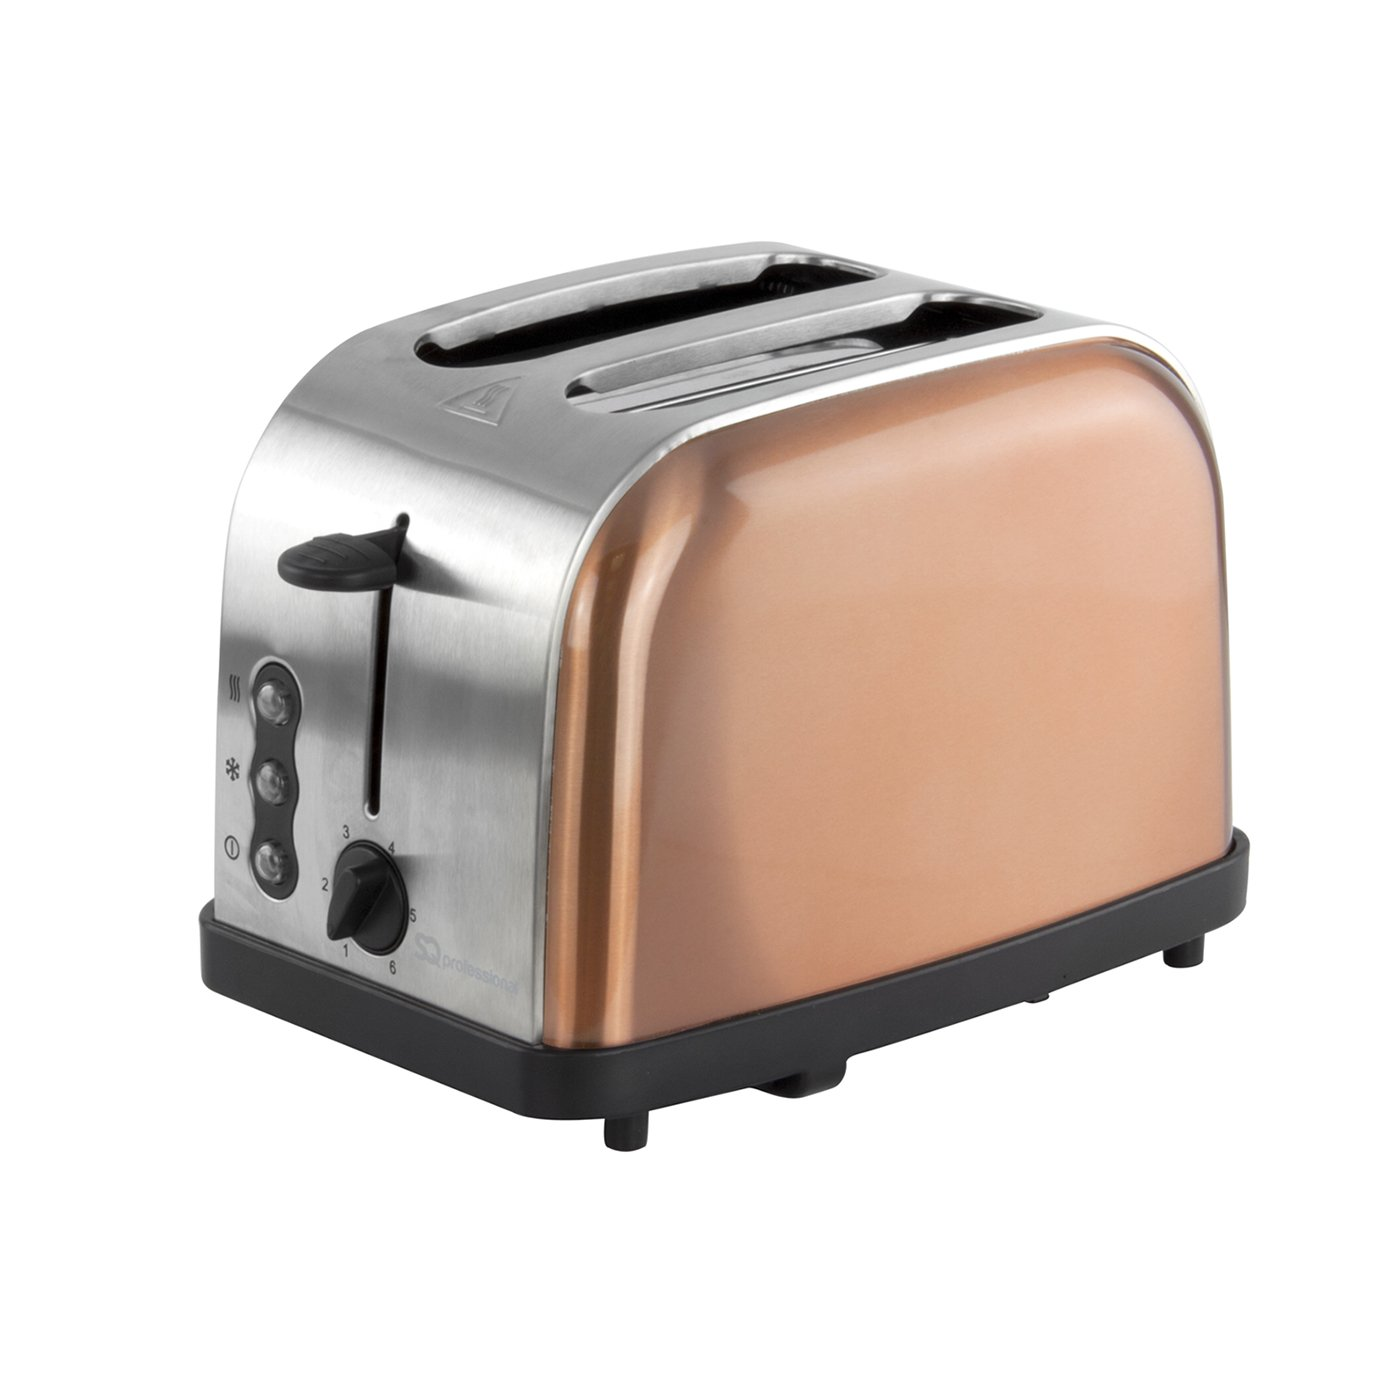 Stainless Steel Copper Colour Electric Kettle /& Toaster Set